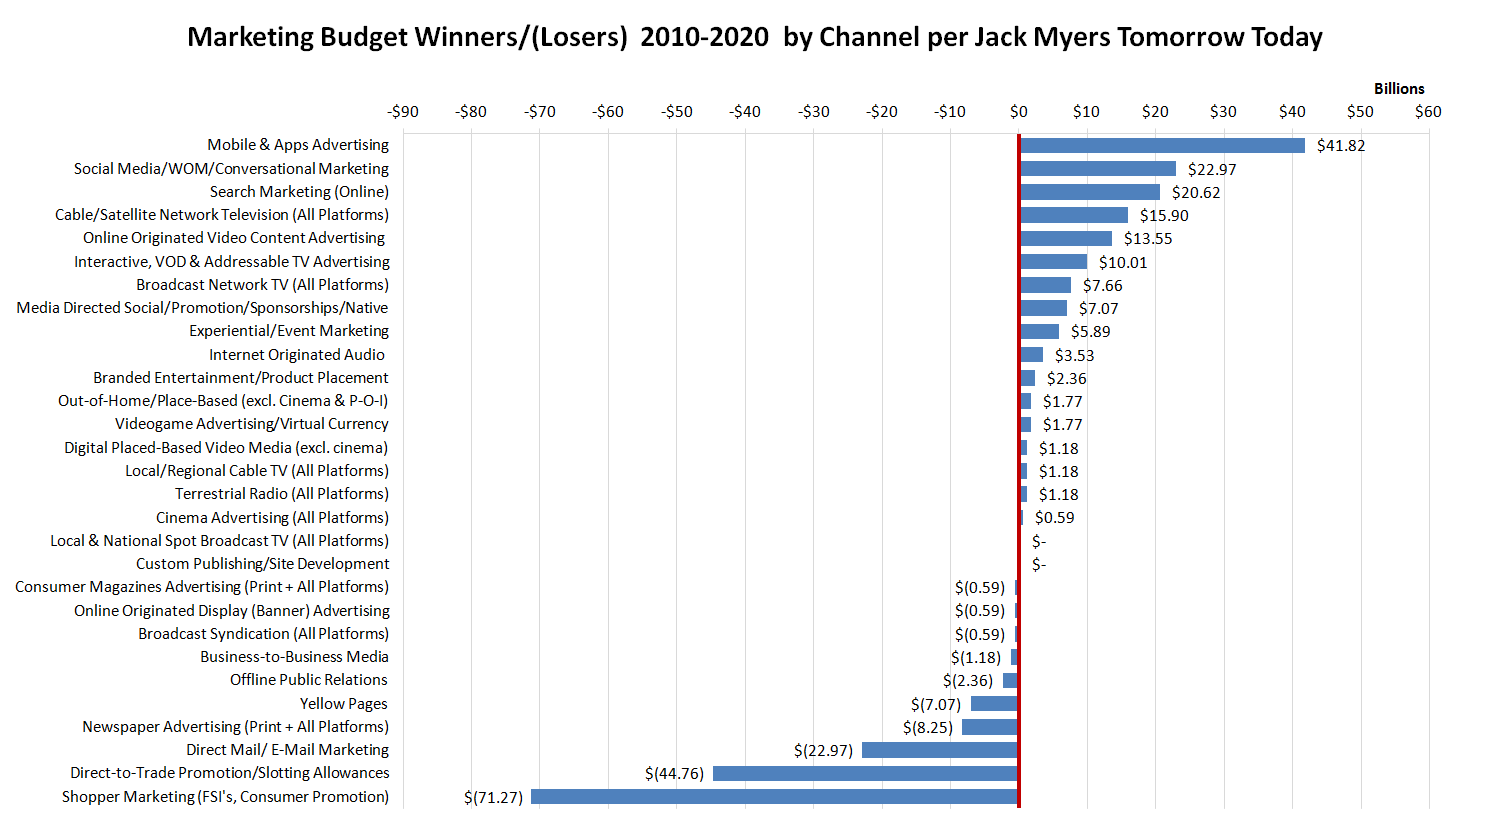 Marketing Budget Biggest Winners and Losers 2010-2020